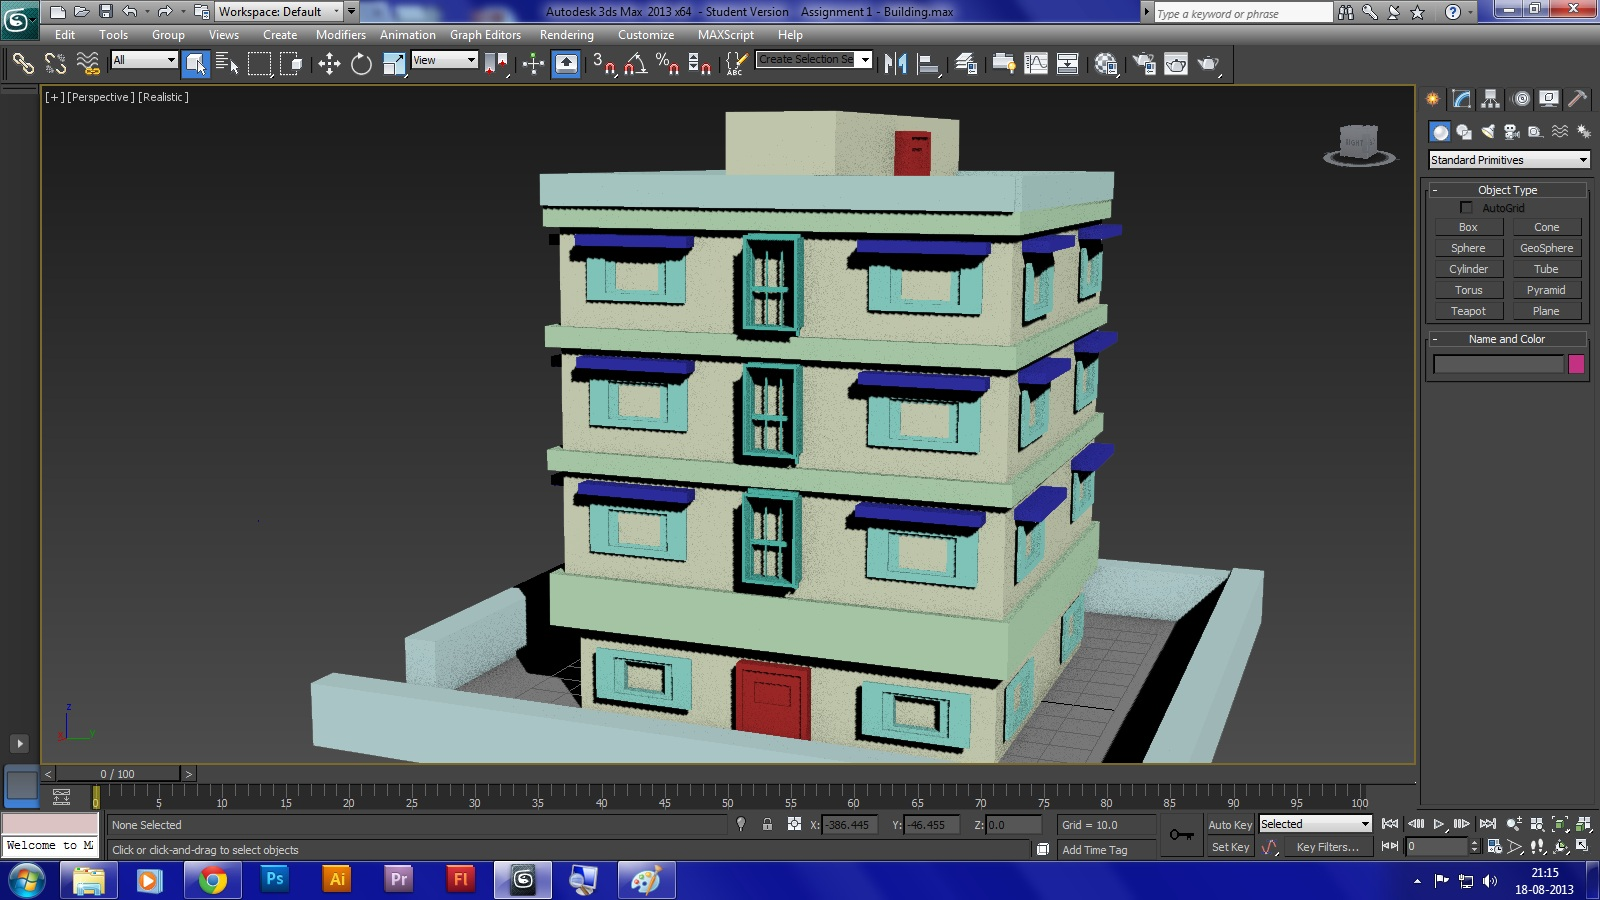 Building design autodesk 3ds max lightening vfx for 3ds max design